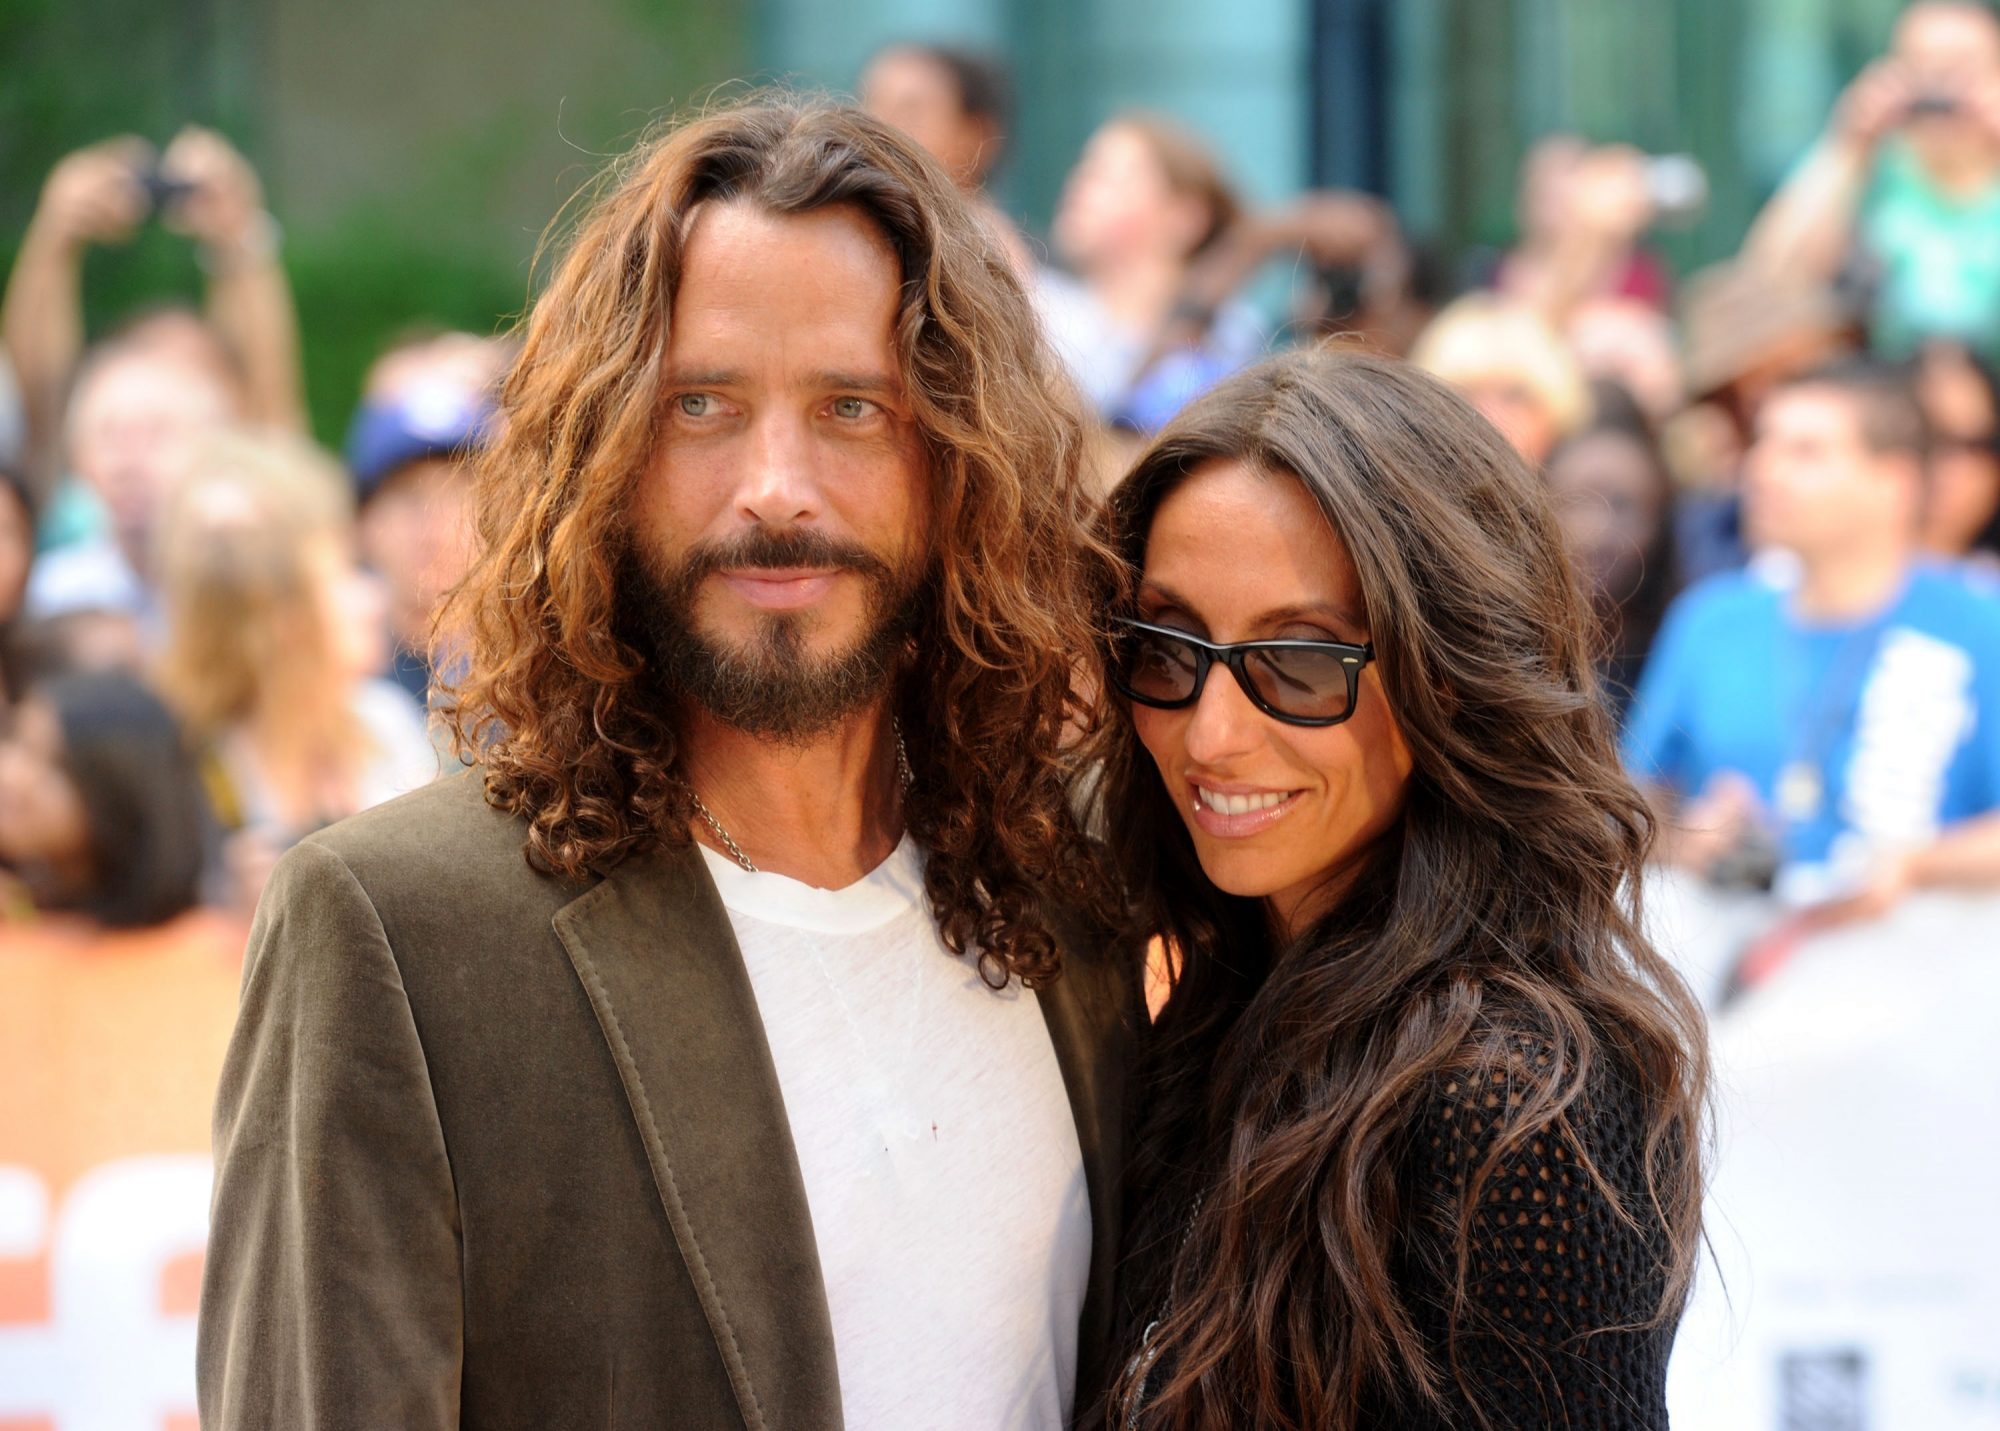 Chris Cornell's Family Thinks Ativan May Have Played Role in Suicide. How Safe Is the Drug?